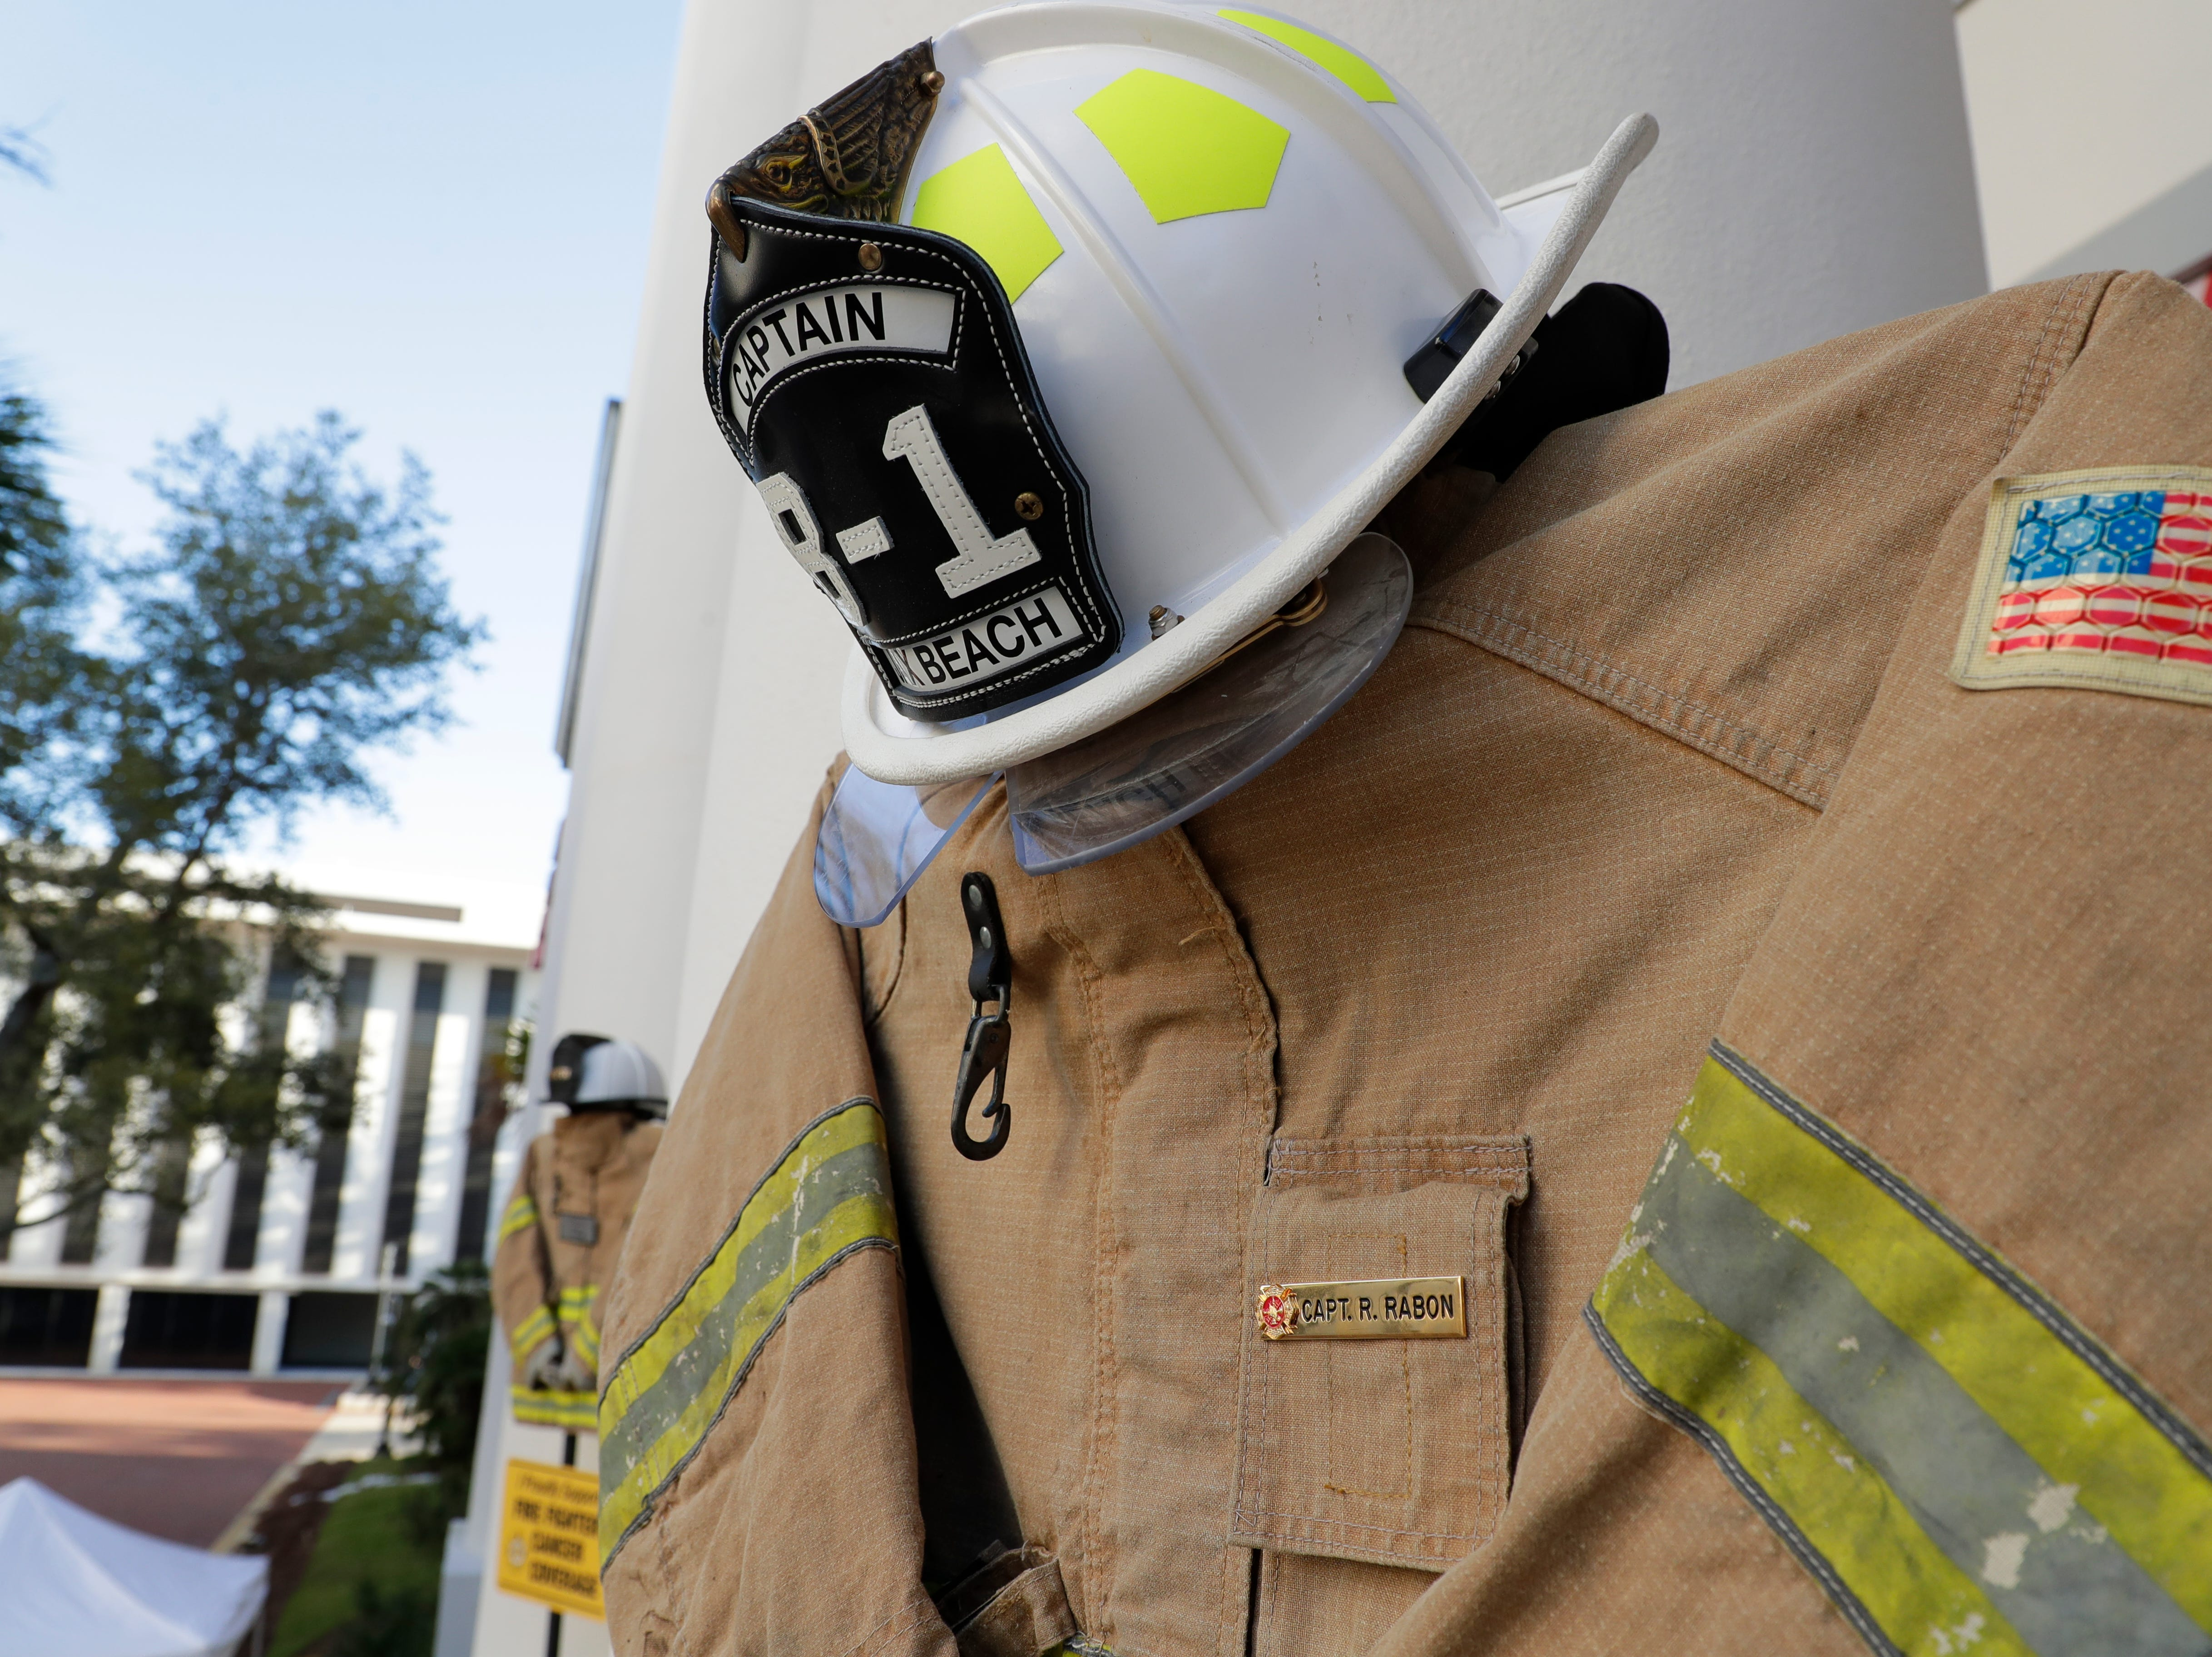 The uniform Jacksonville Beach Fire Department Captain Ronald Rabon wore. Rabon battled appendix cancer and passed in Jan. 2018. Firefighters and their families from around the state create a display at the Capitol of 500 pairs of boots in honor of firefighters who lost their battle or are battling with cancer caused from smoke inhalation and carcinogens Thursday, March 7, 2019. The state of Florida is one of five states in the country that does not have a bill acknowledging cancer is a job-related illness.